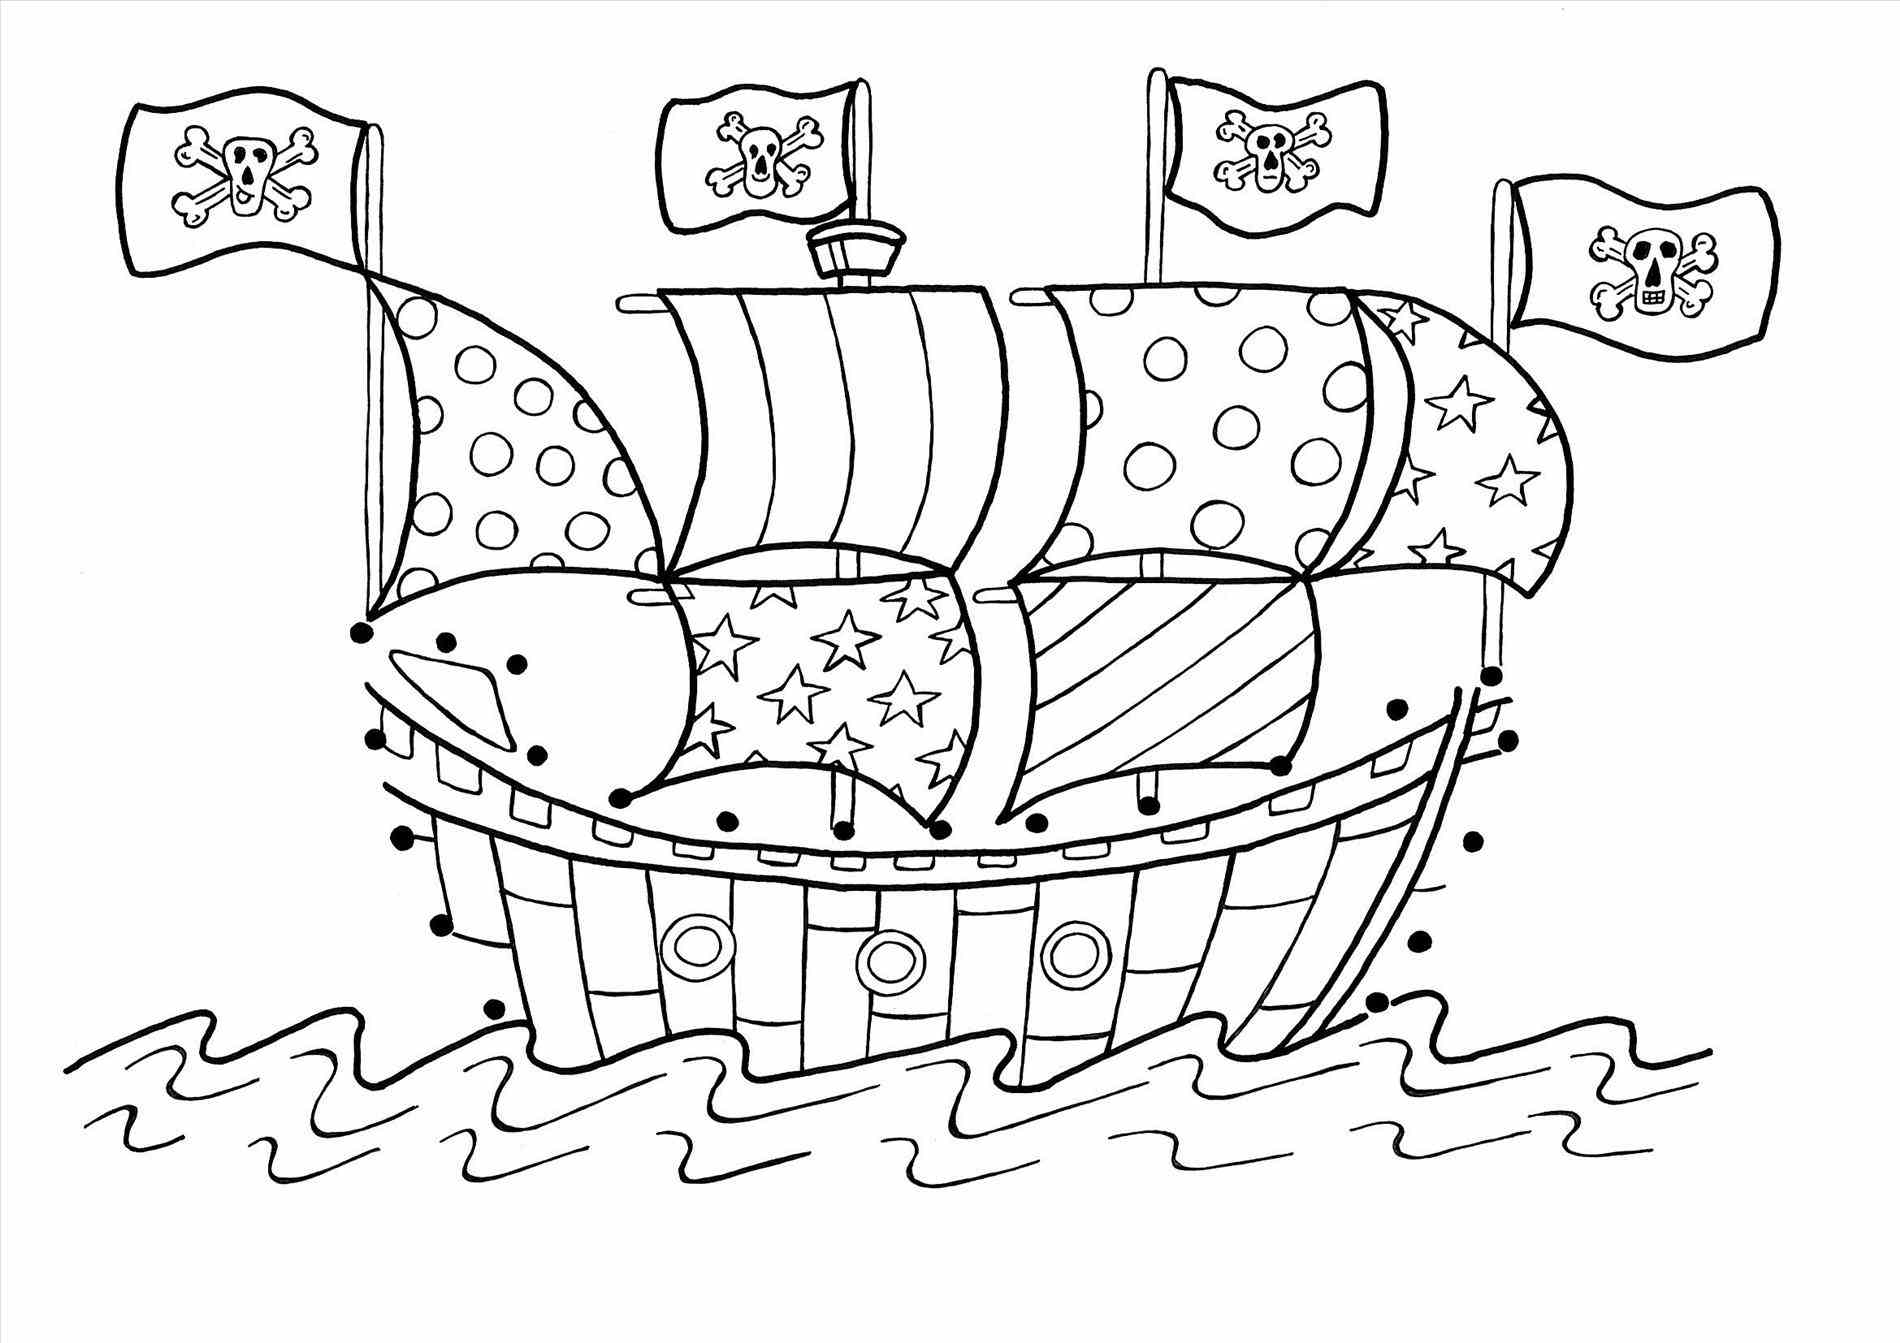 Pirate Treasure Chest Coloring Pages at GetDrawings.com | Free for ...